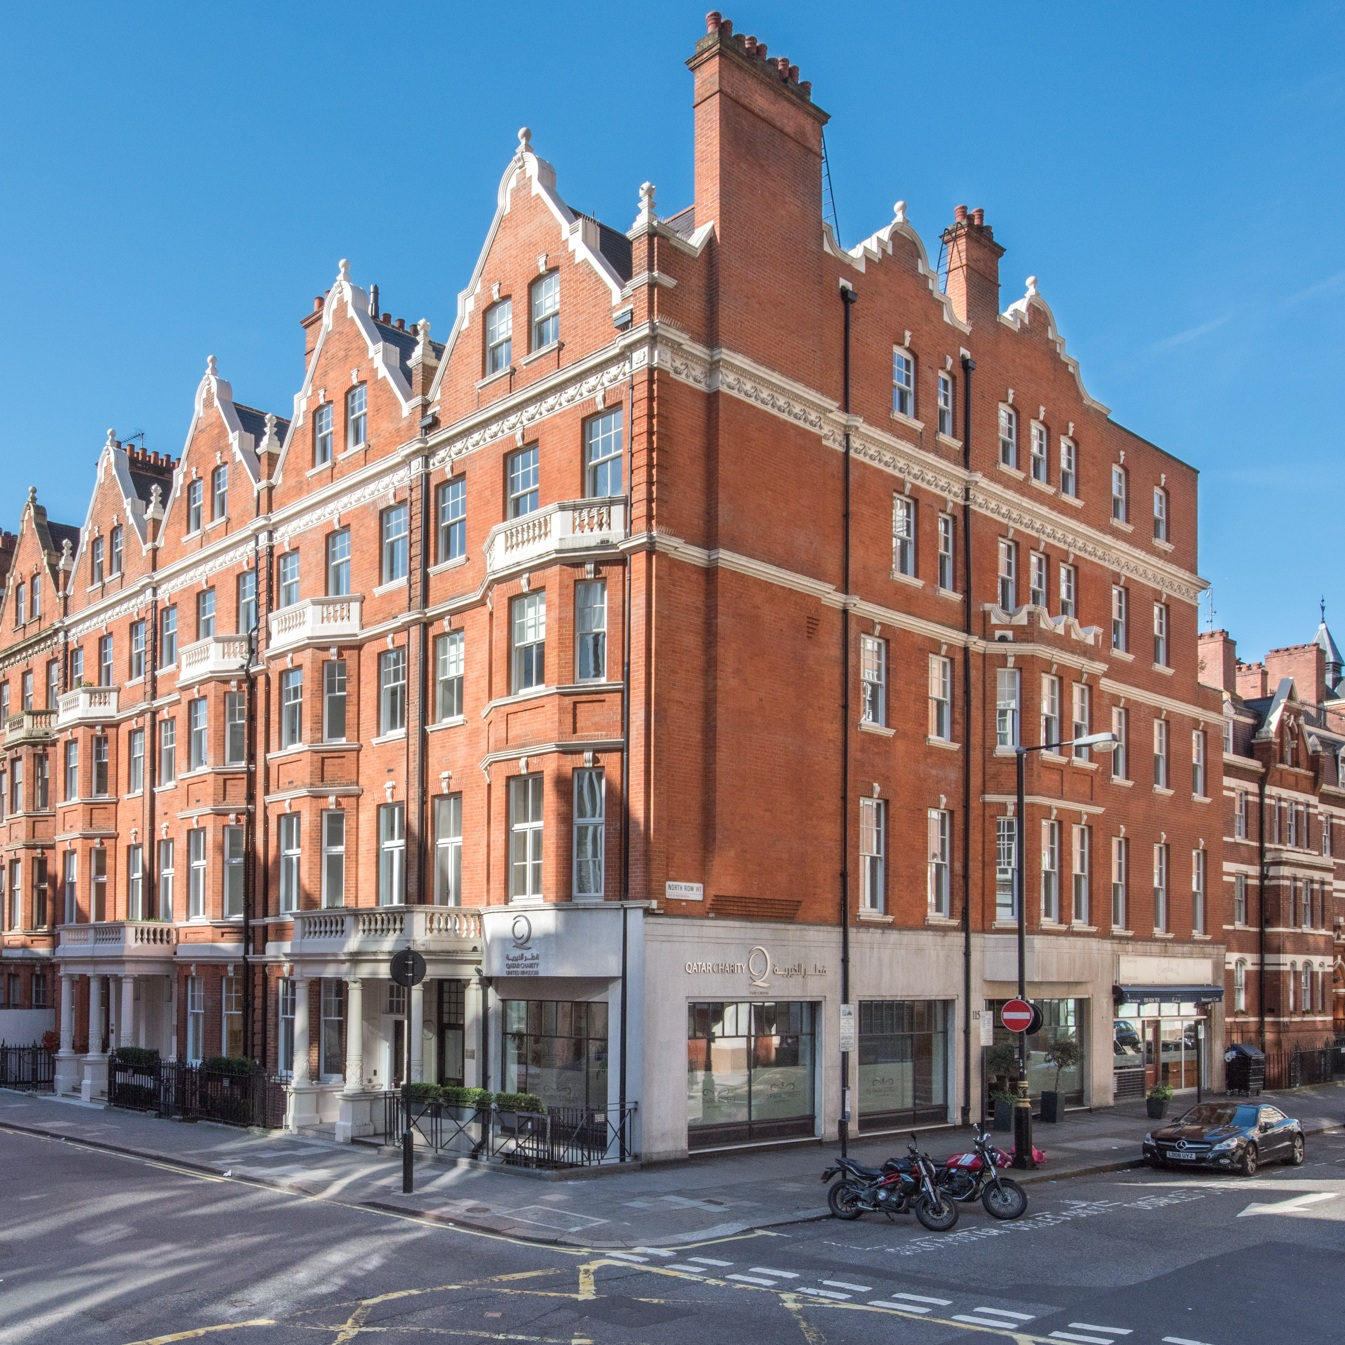 park st, mayfair - Purchased on behalf of clients, this Mayfair corner building is held on a long lease from Grosvenor.Atlas secured a planning and freeholder consent to carry out a comprehensive refurbishment, and negotiated vacant possession in order to carry out the development.The building was completely gutted and rebuilt to provide high-specification offices with a manned reception.Its location and the quality of the refurbishment mean it has proven very popular with office occupiers.